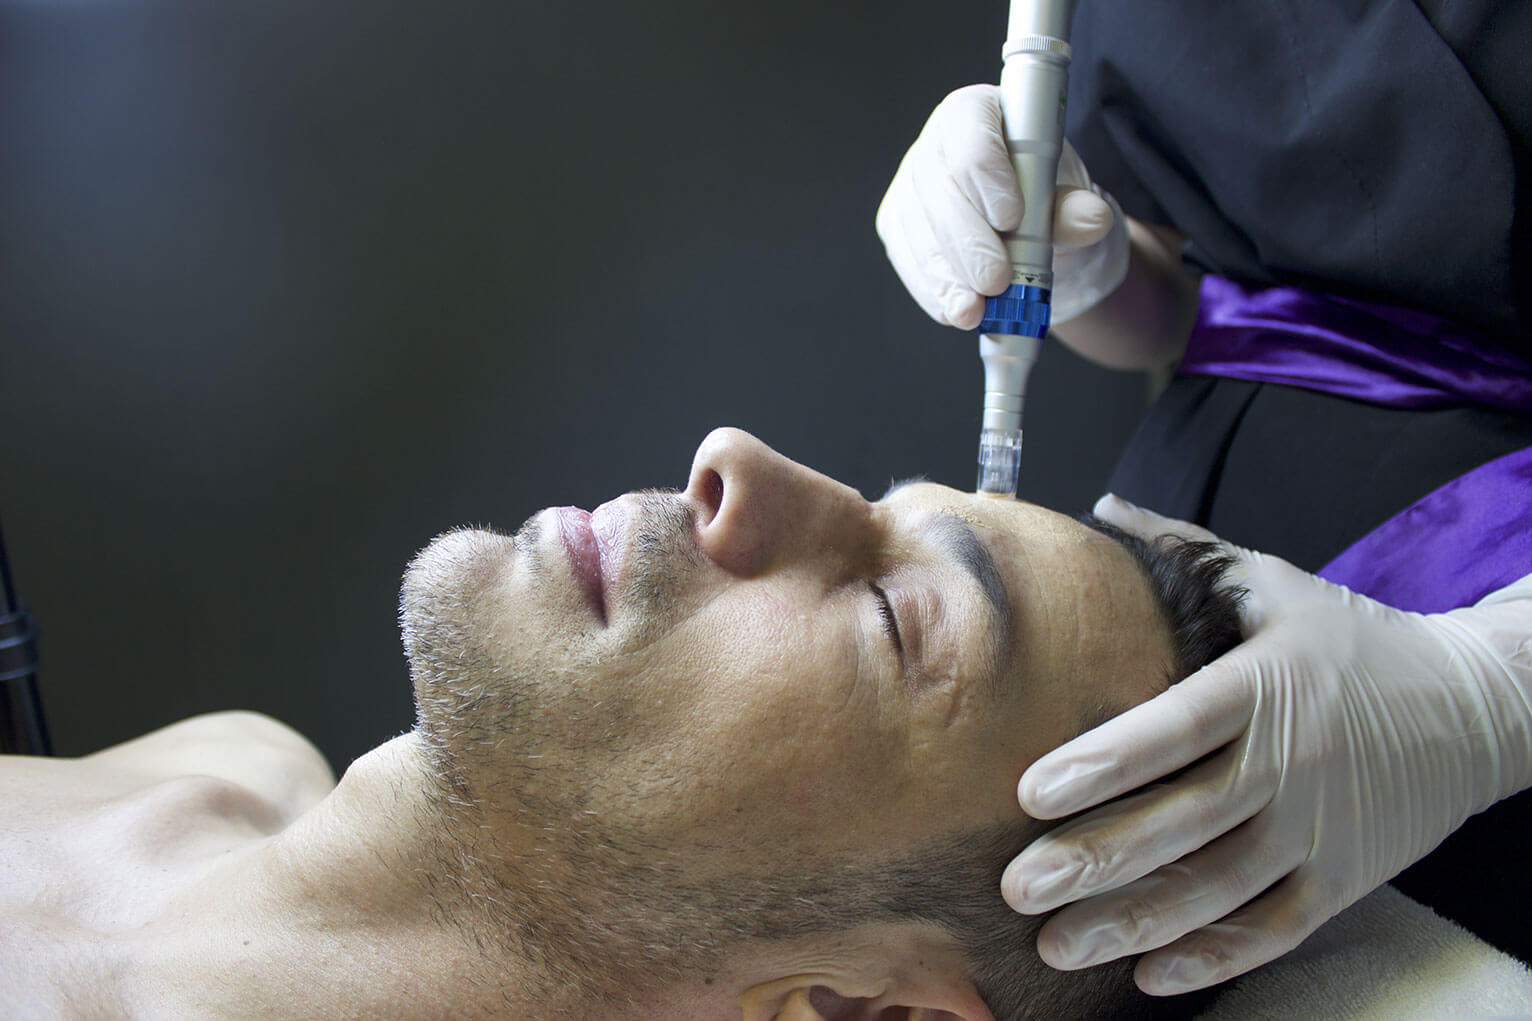 A clinician applies a microneedling device to the hairline of a man who is laying down